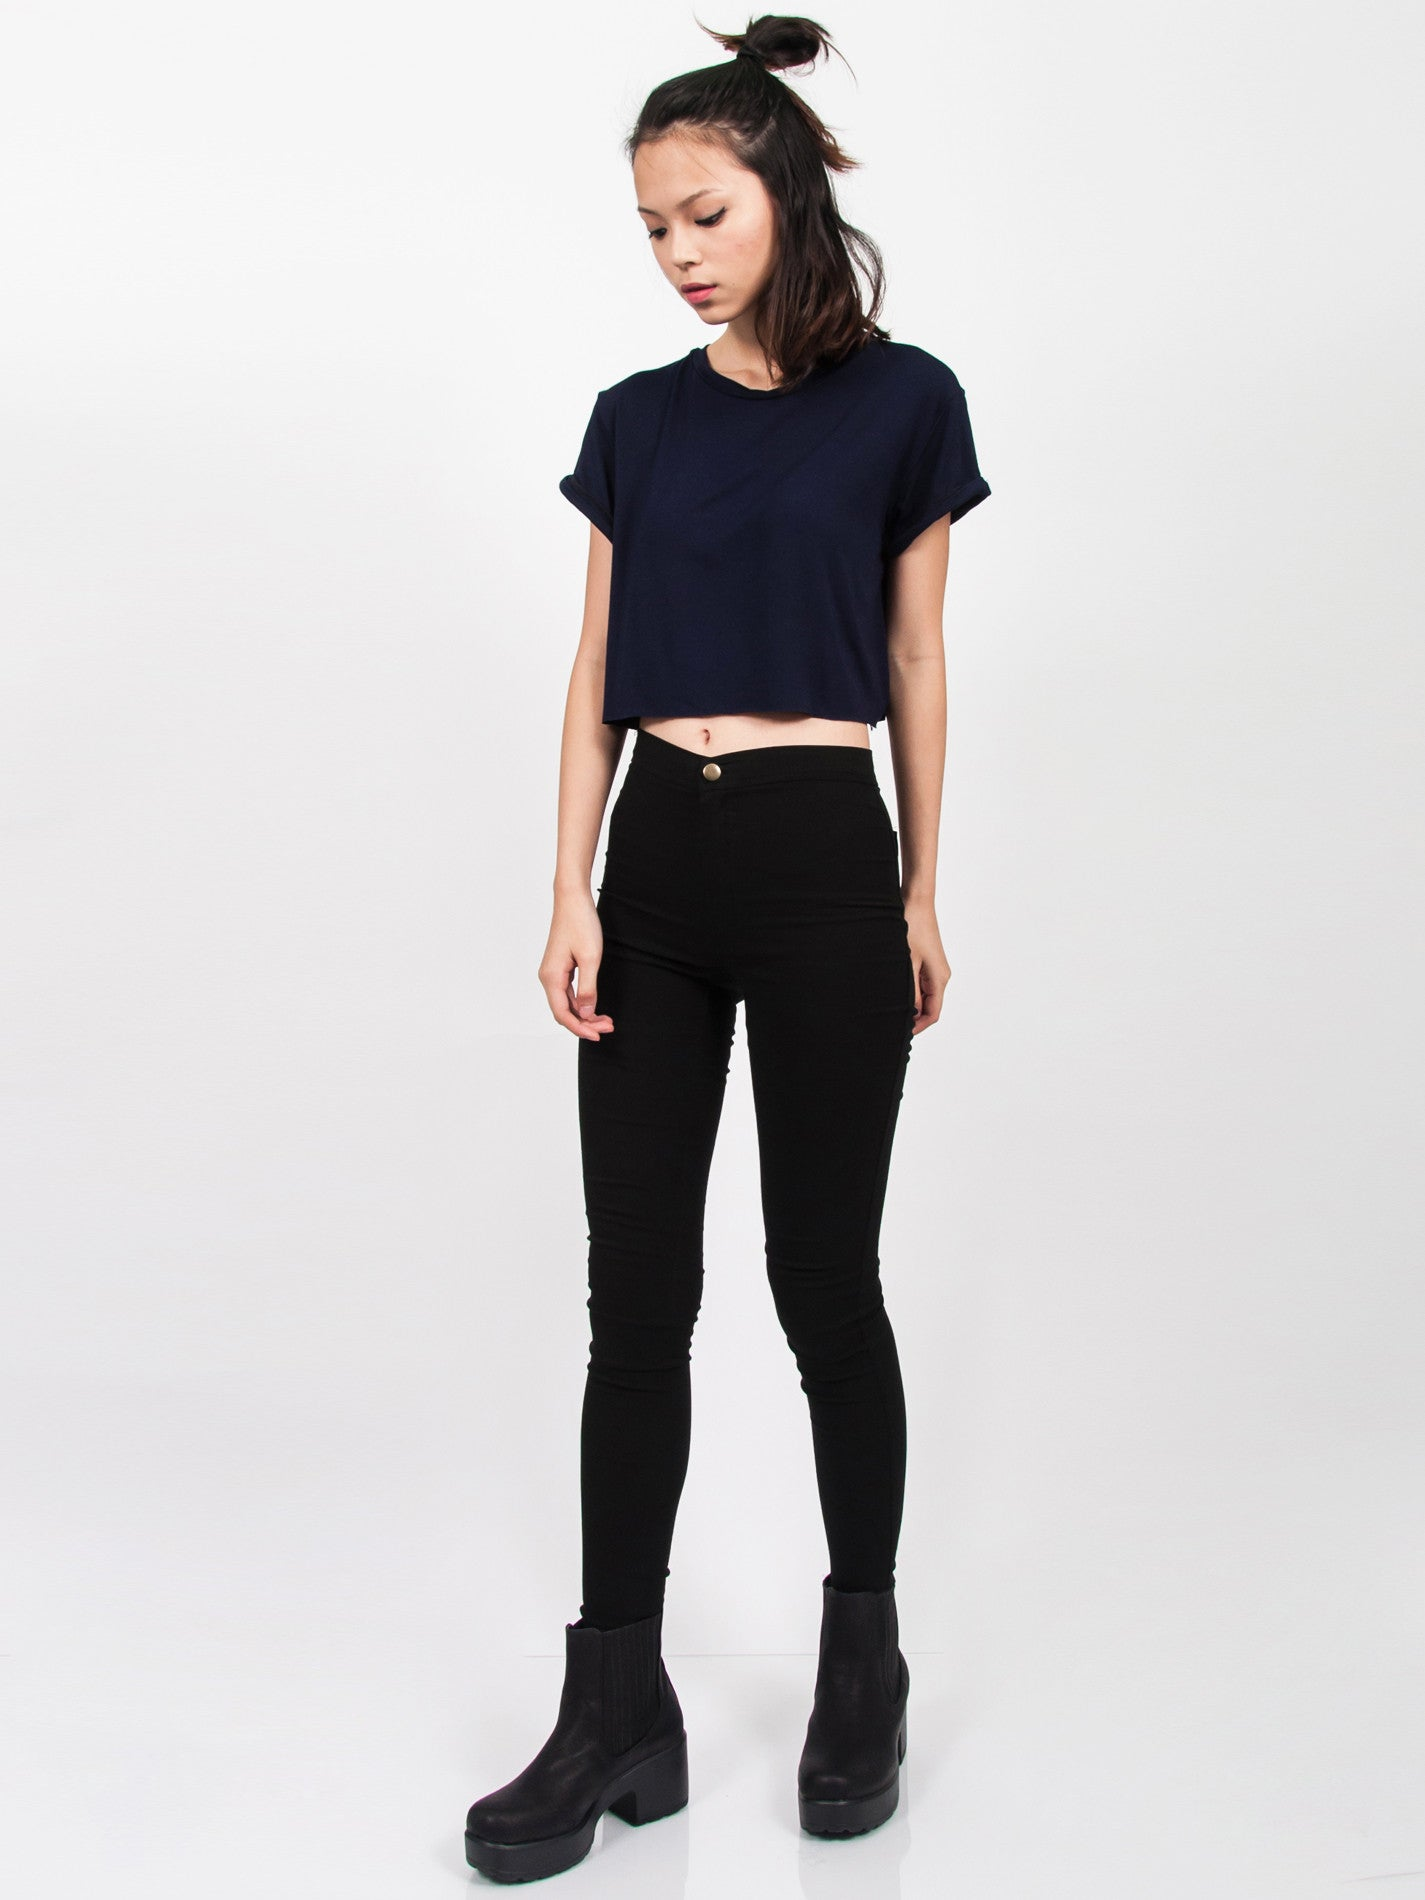 KENDALL Everyday Cropped Tee (Navy)